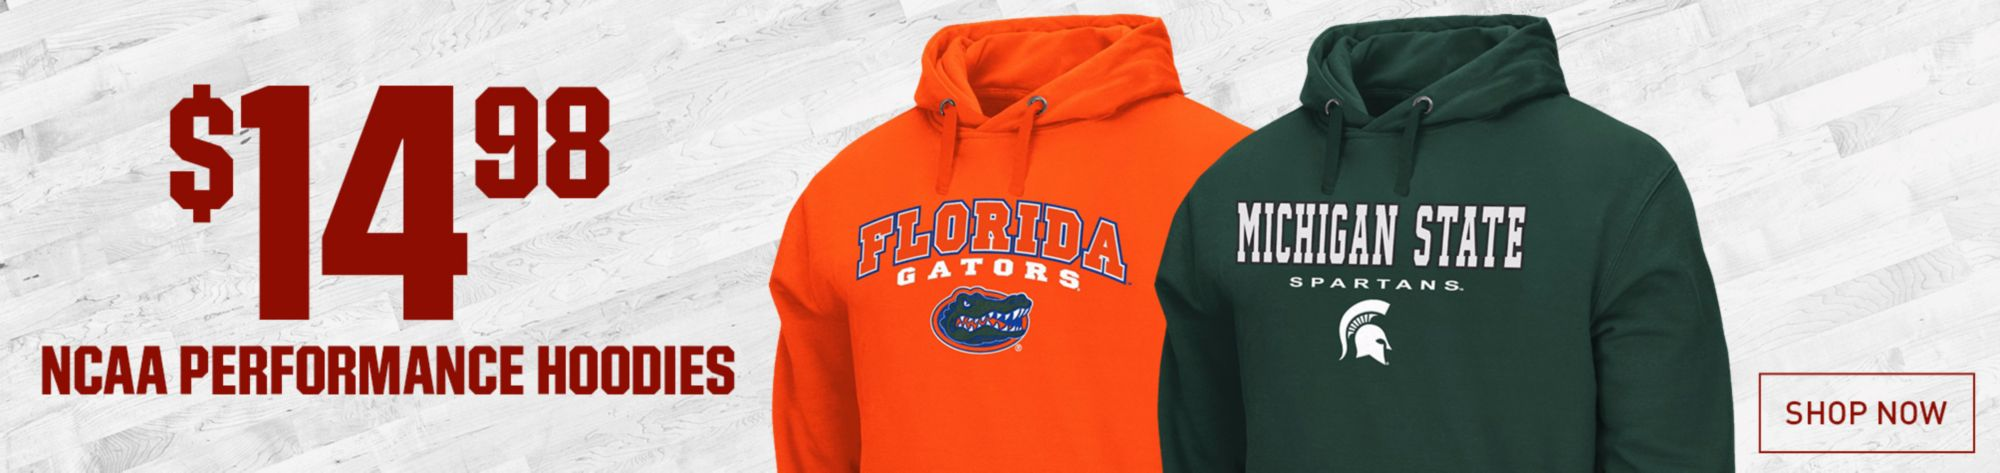 $14.98 NCAA Performance Hoodies